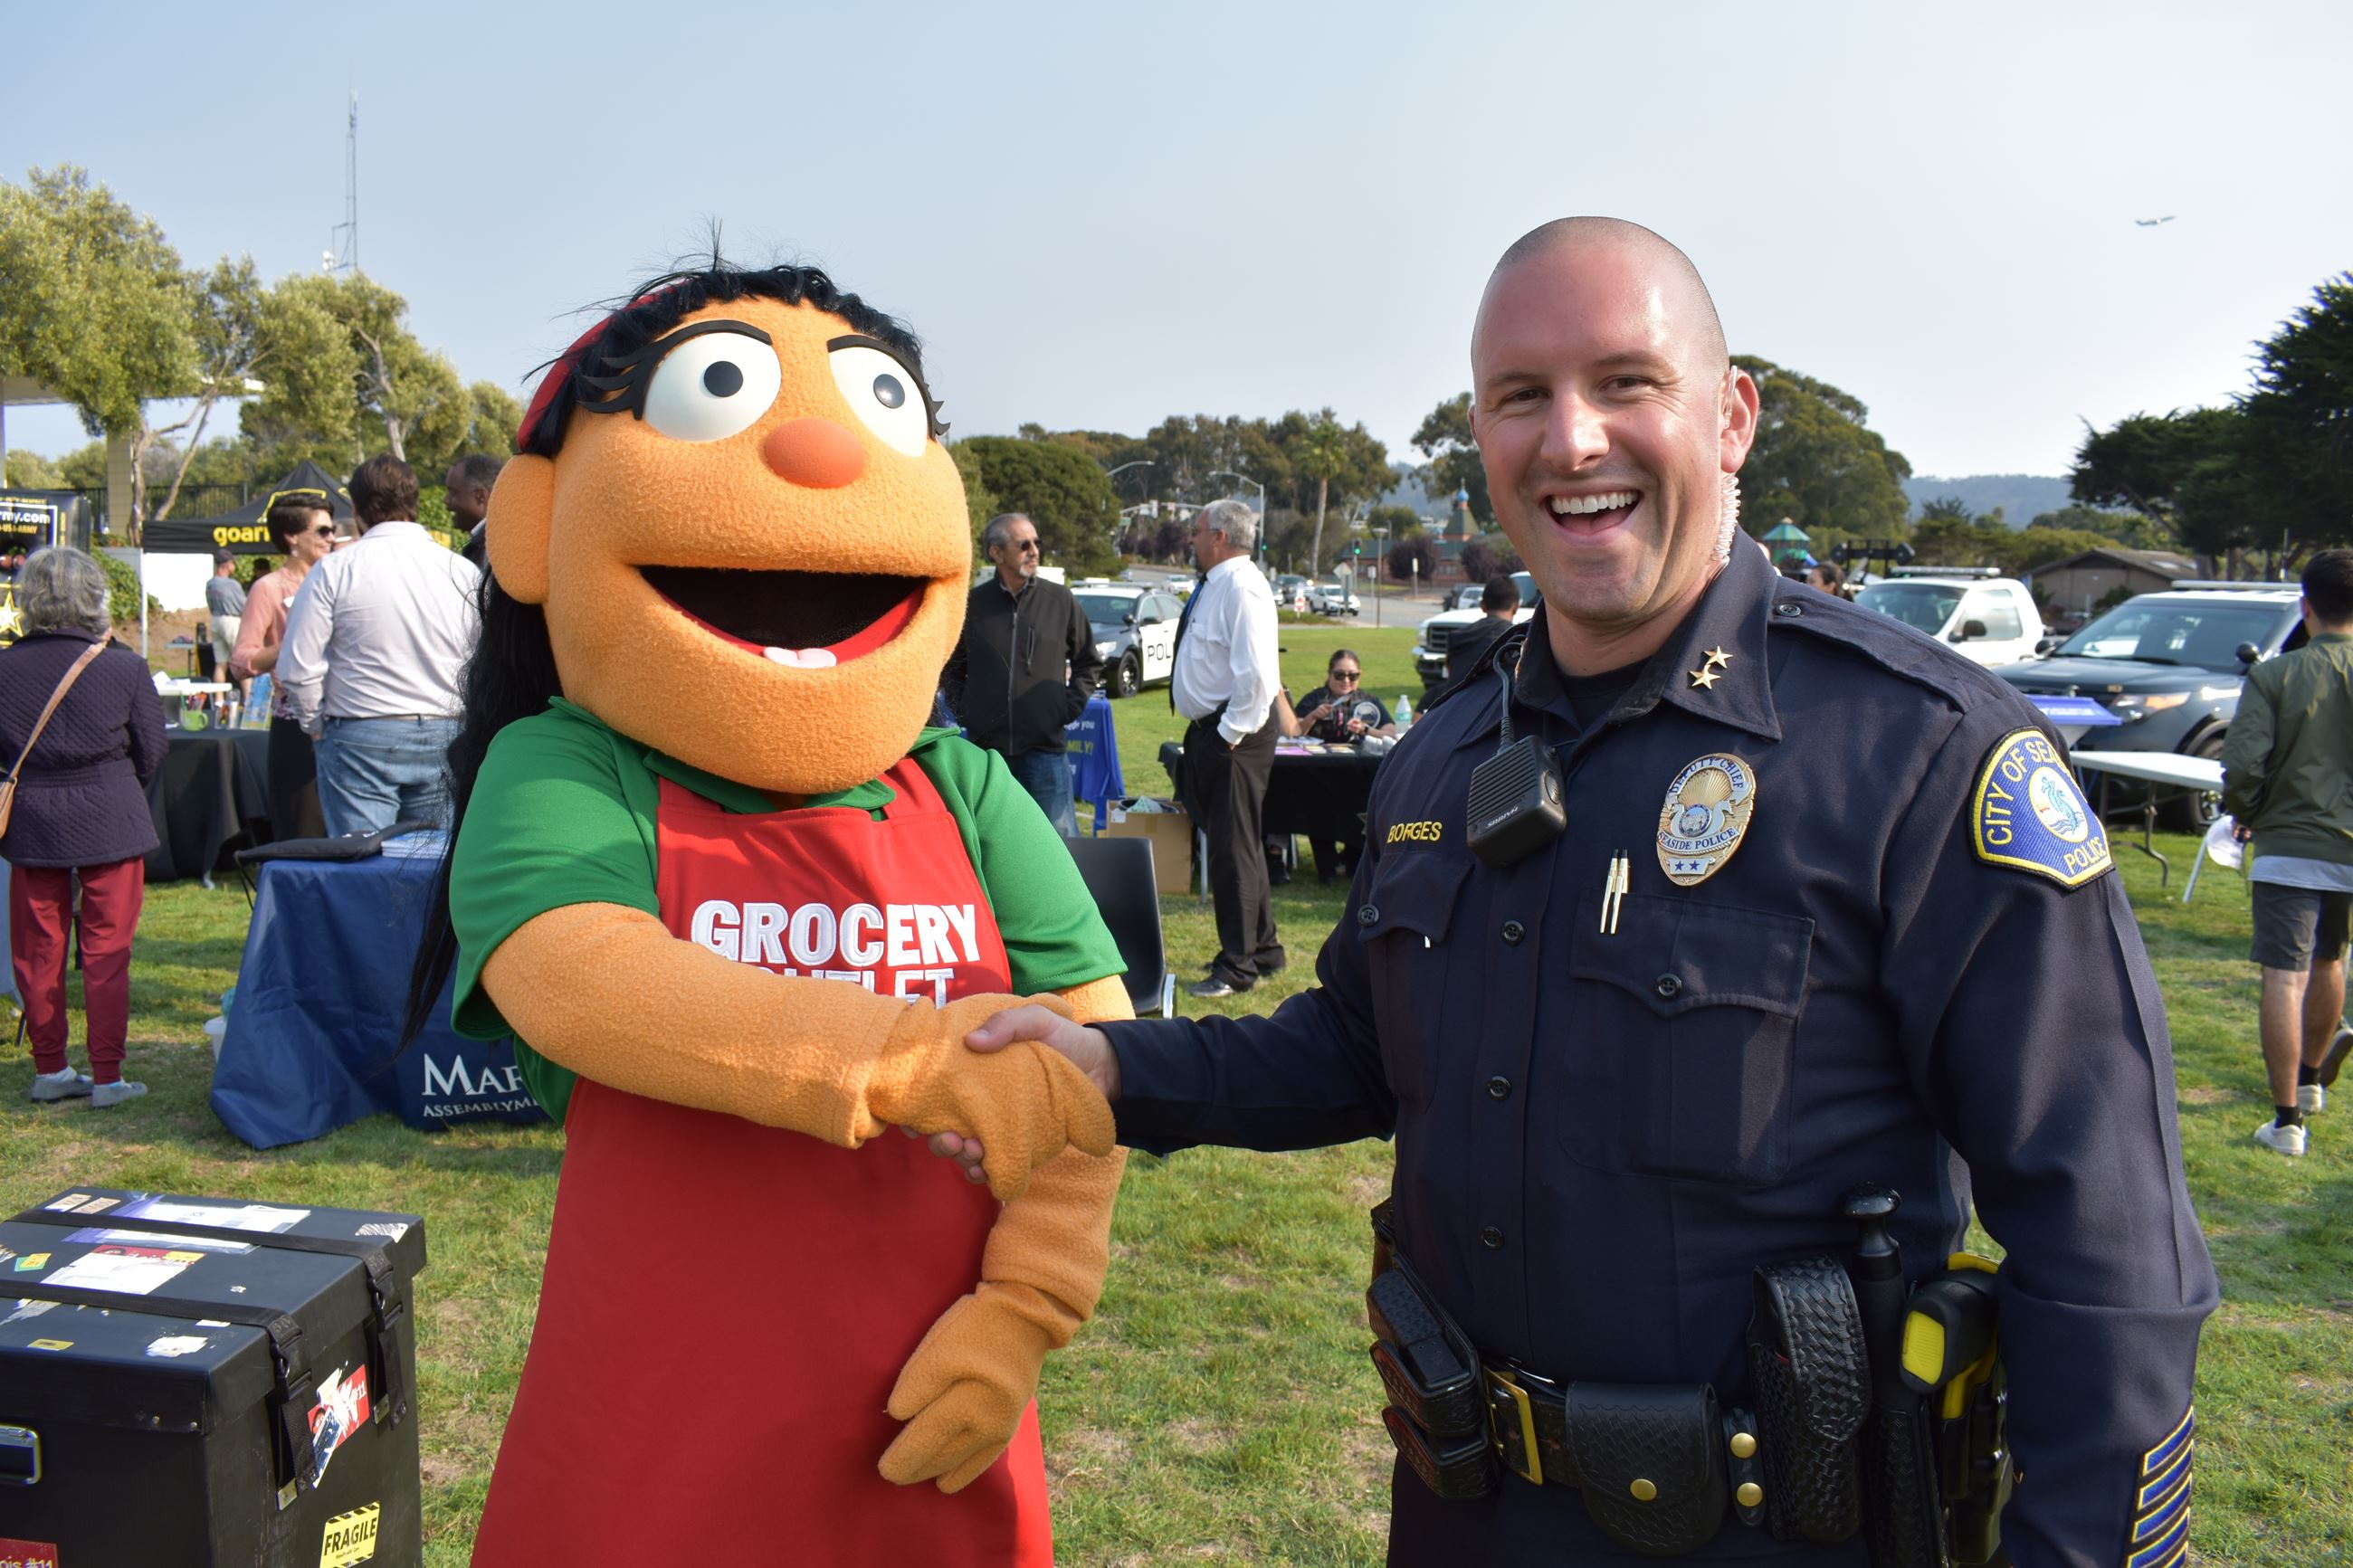 Photo from National Night Out event